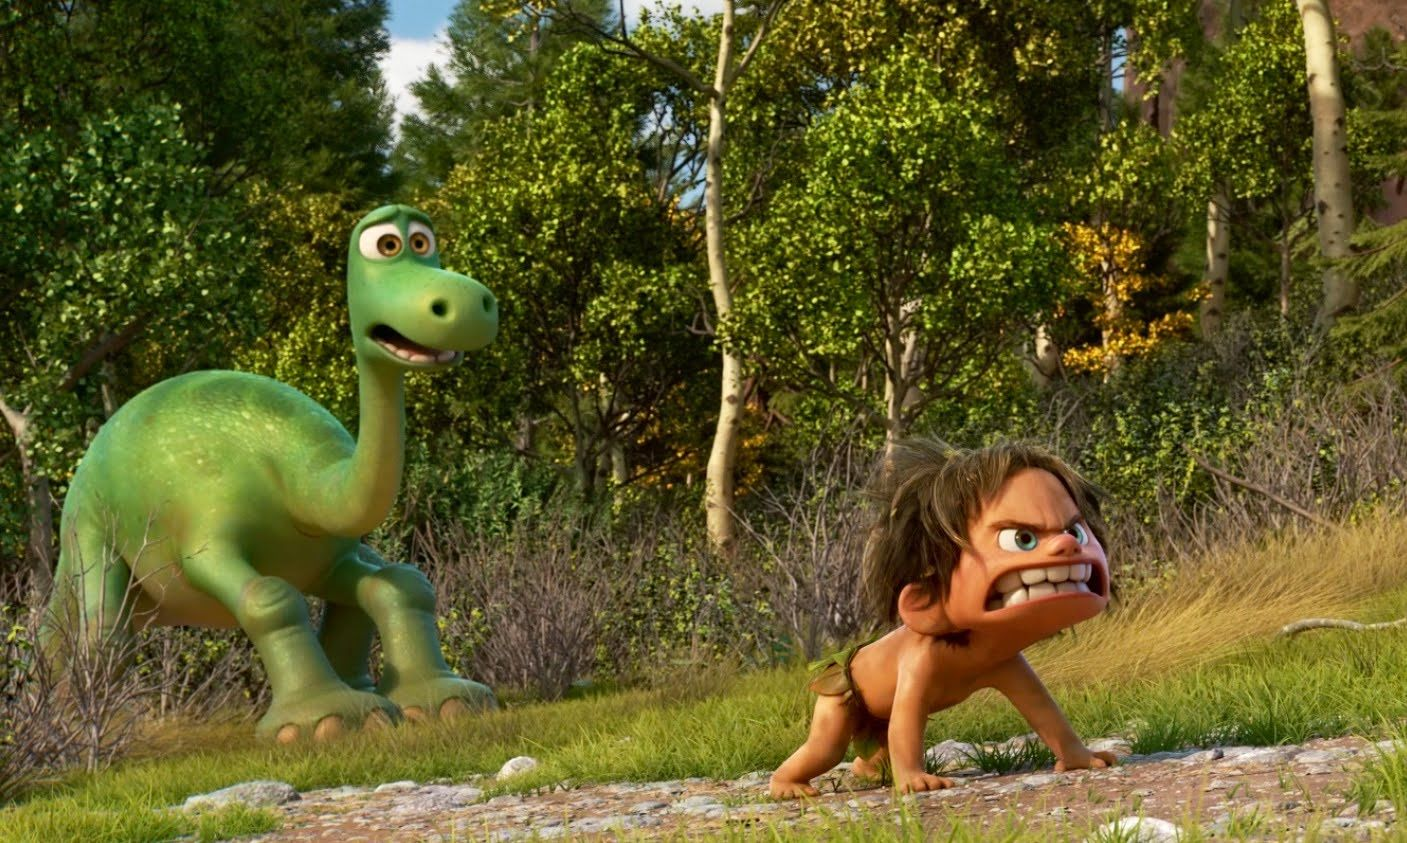 the-good-dinosaur-is-one-of-the-most-beautiful-movies-ever-made-725253